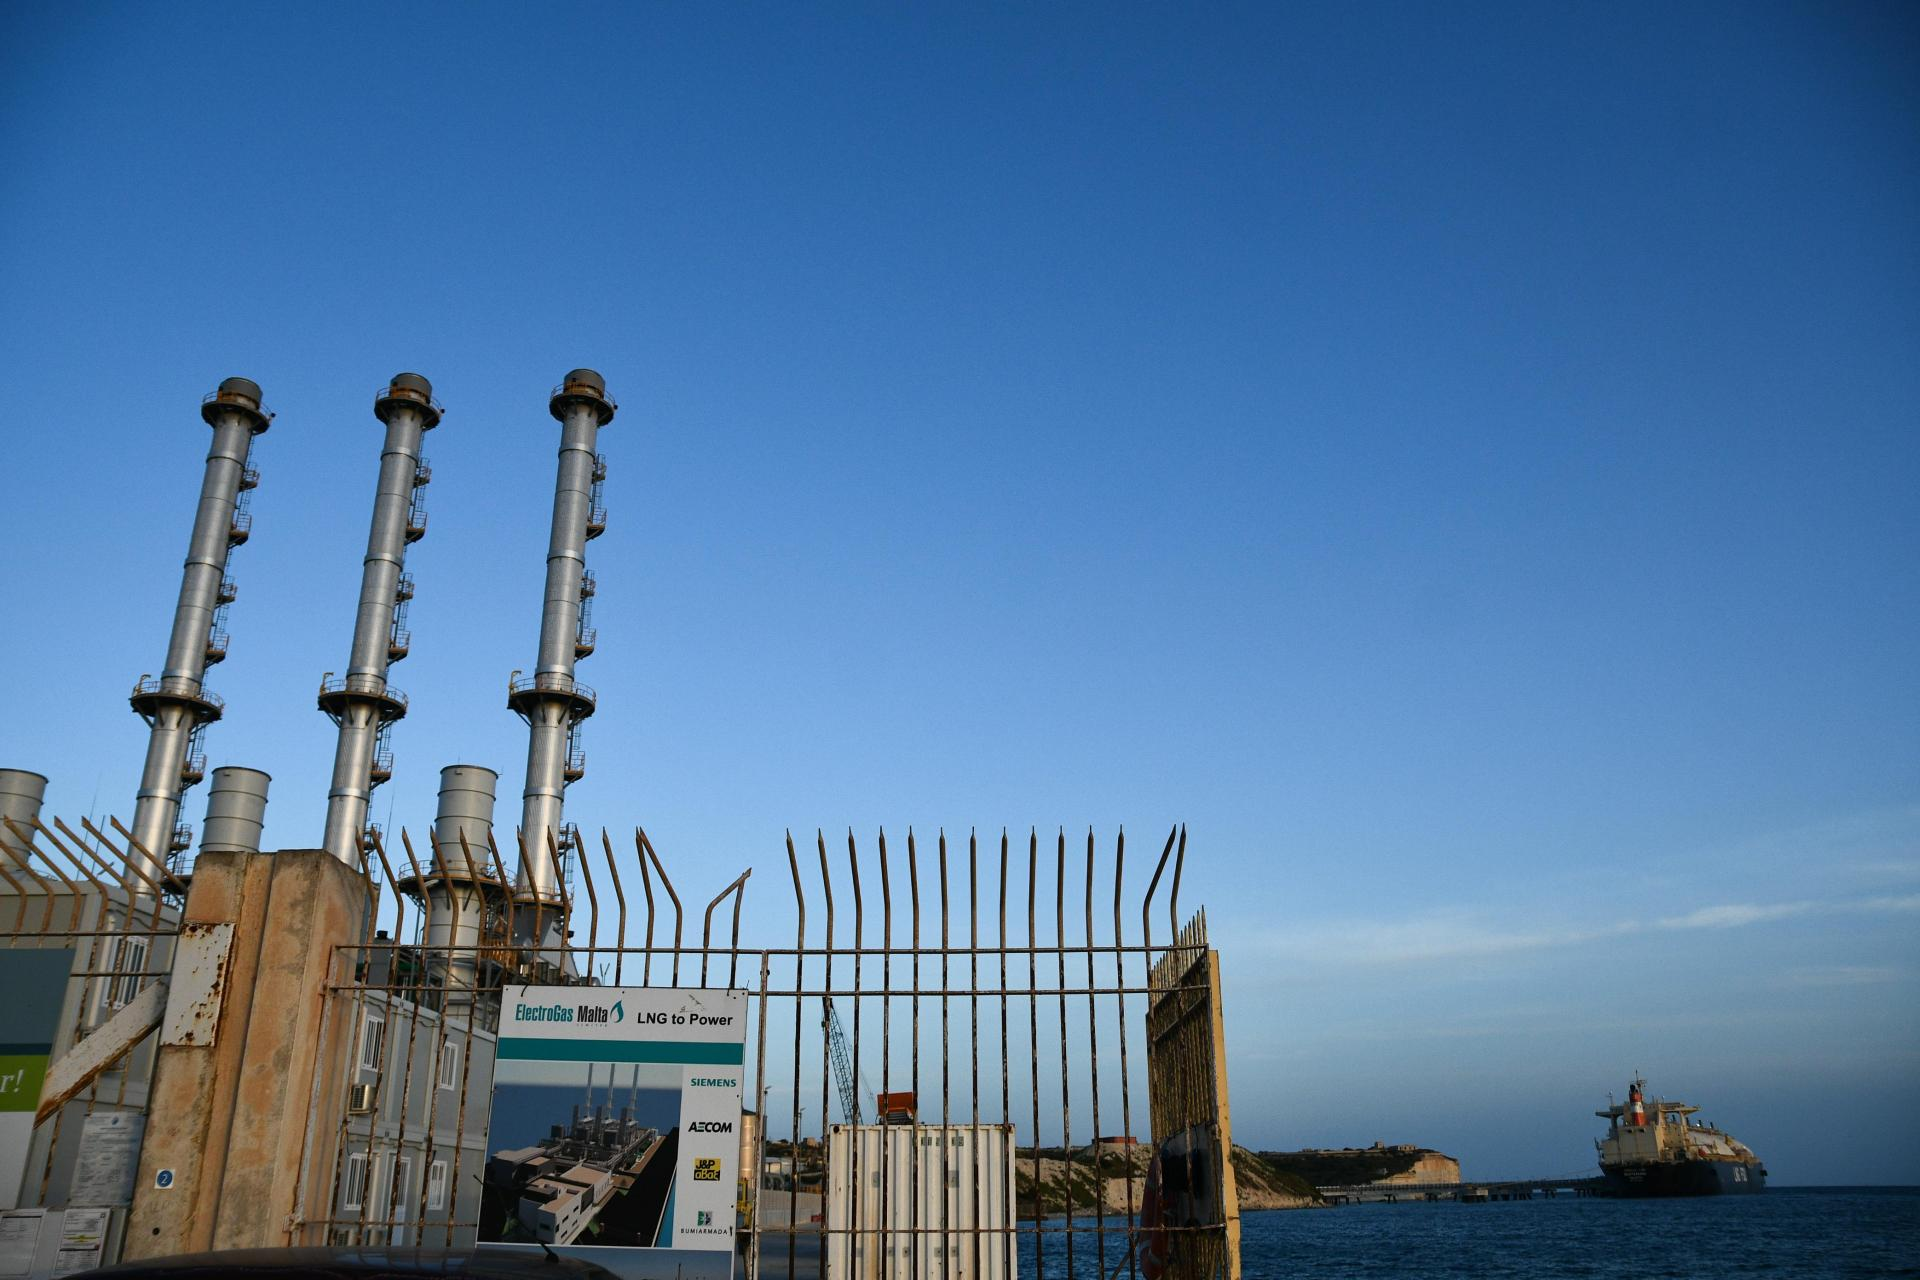 The Electrogas power station in Delimara. Photo: DOI